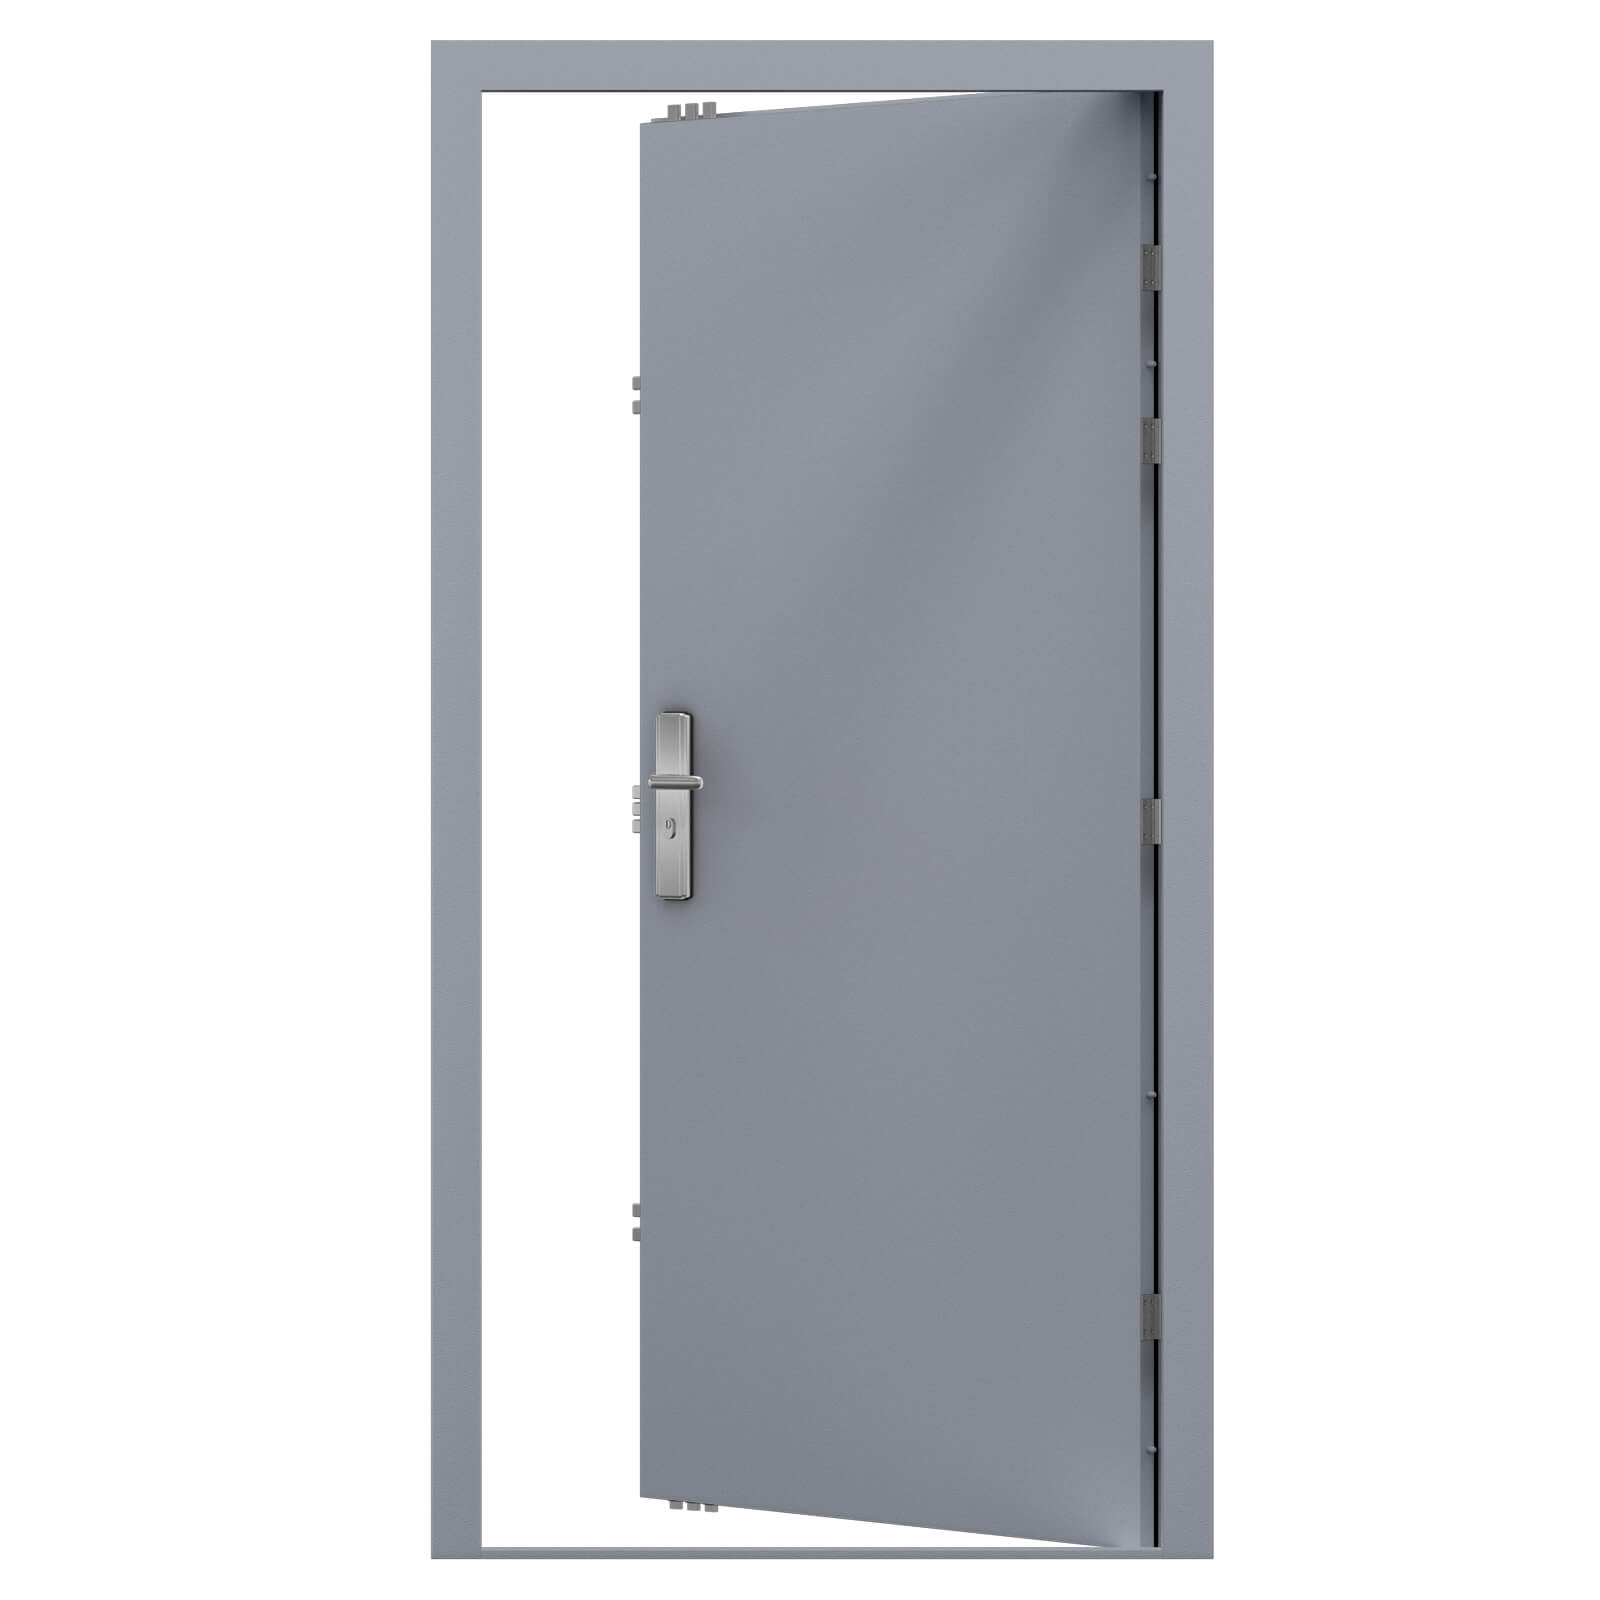 Steel Security Door - Heavy Duty | Latham's Steel Doors